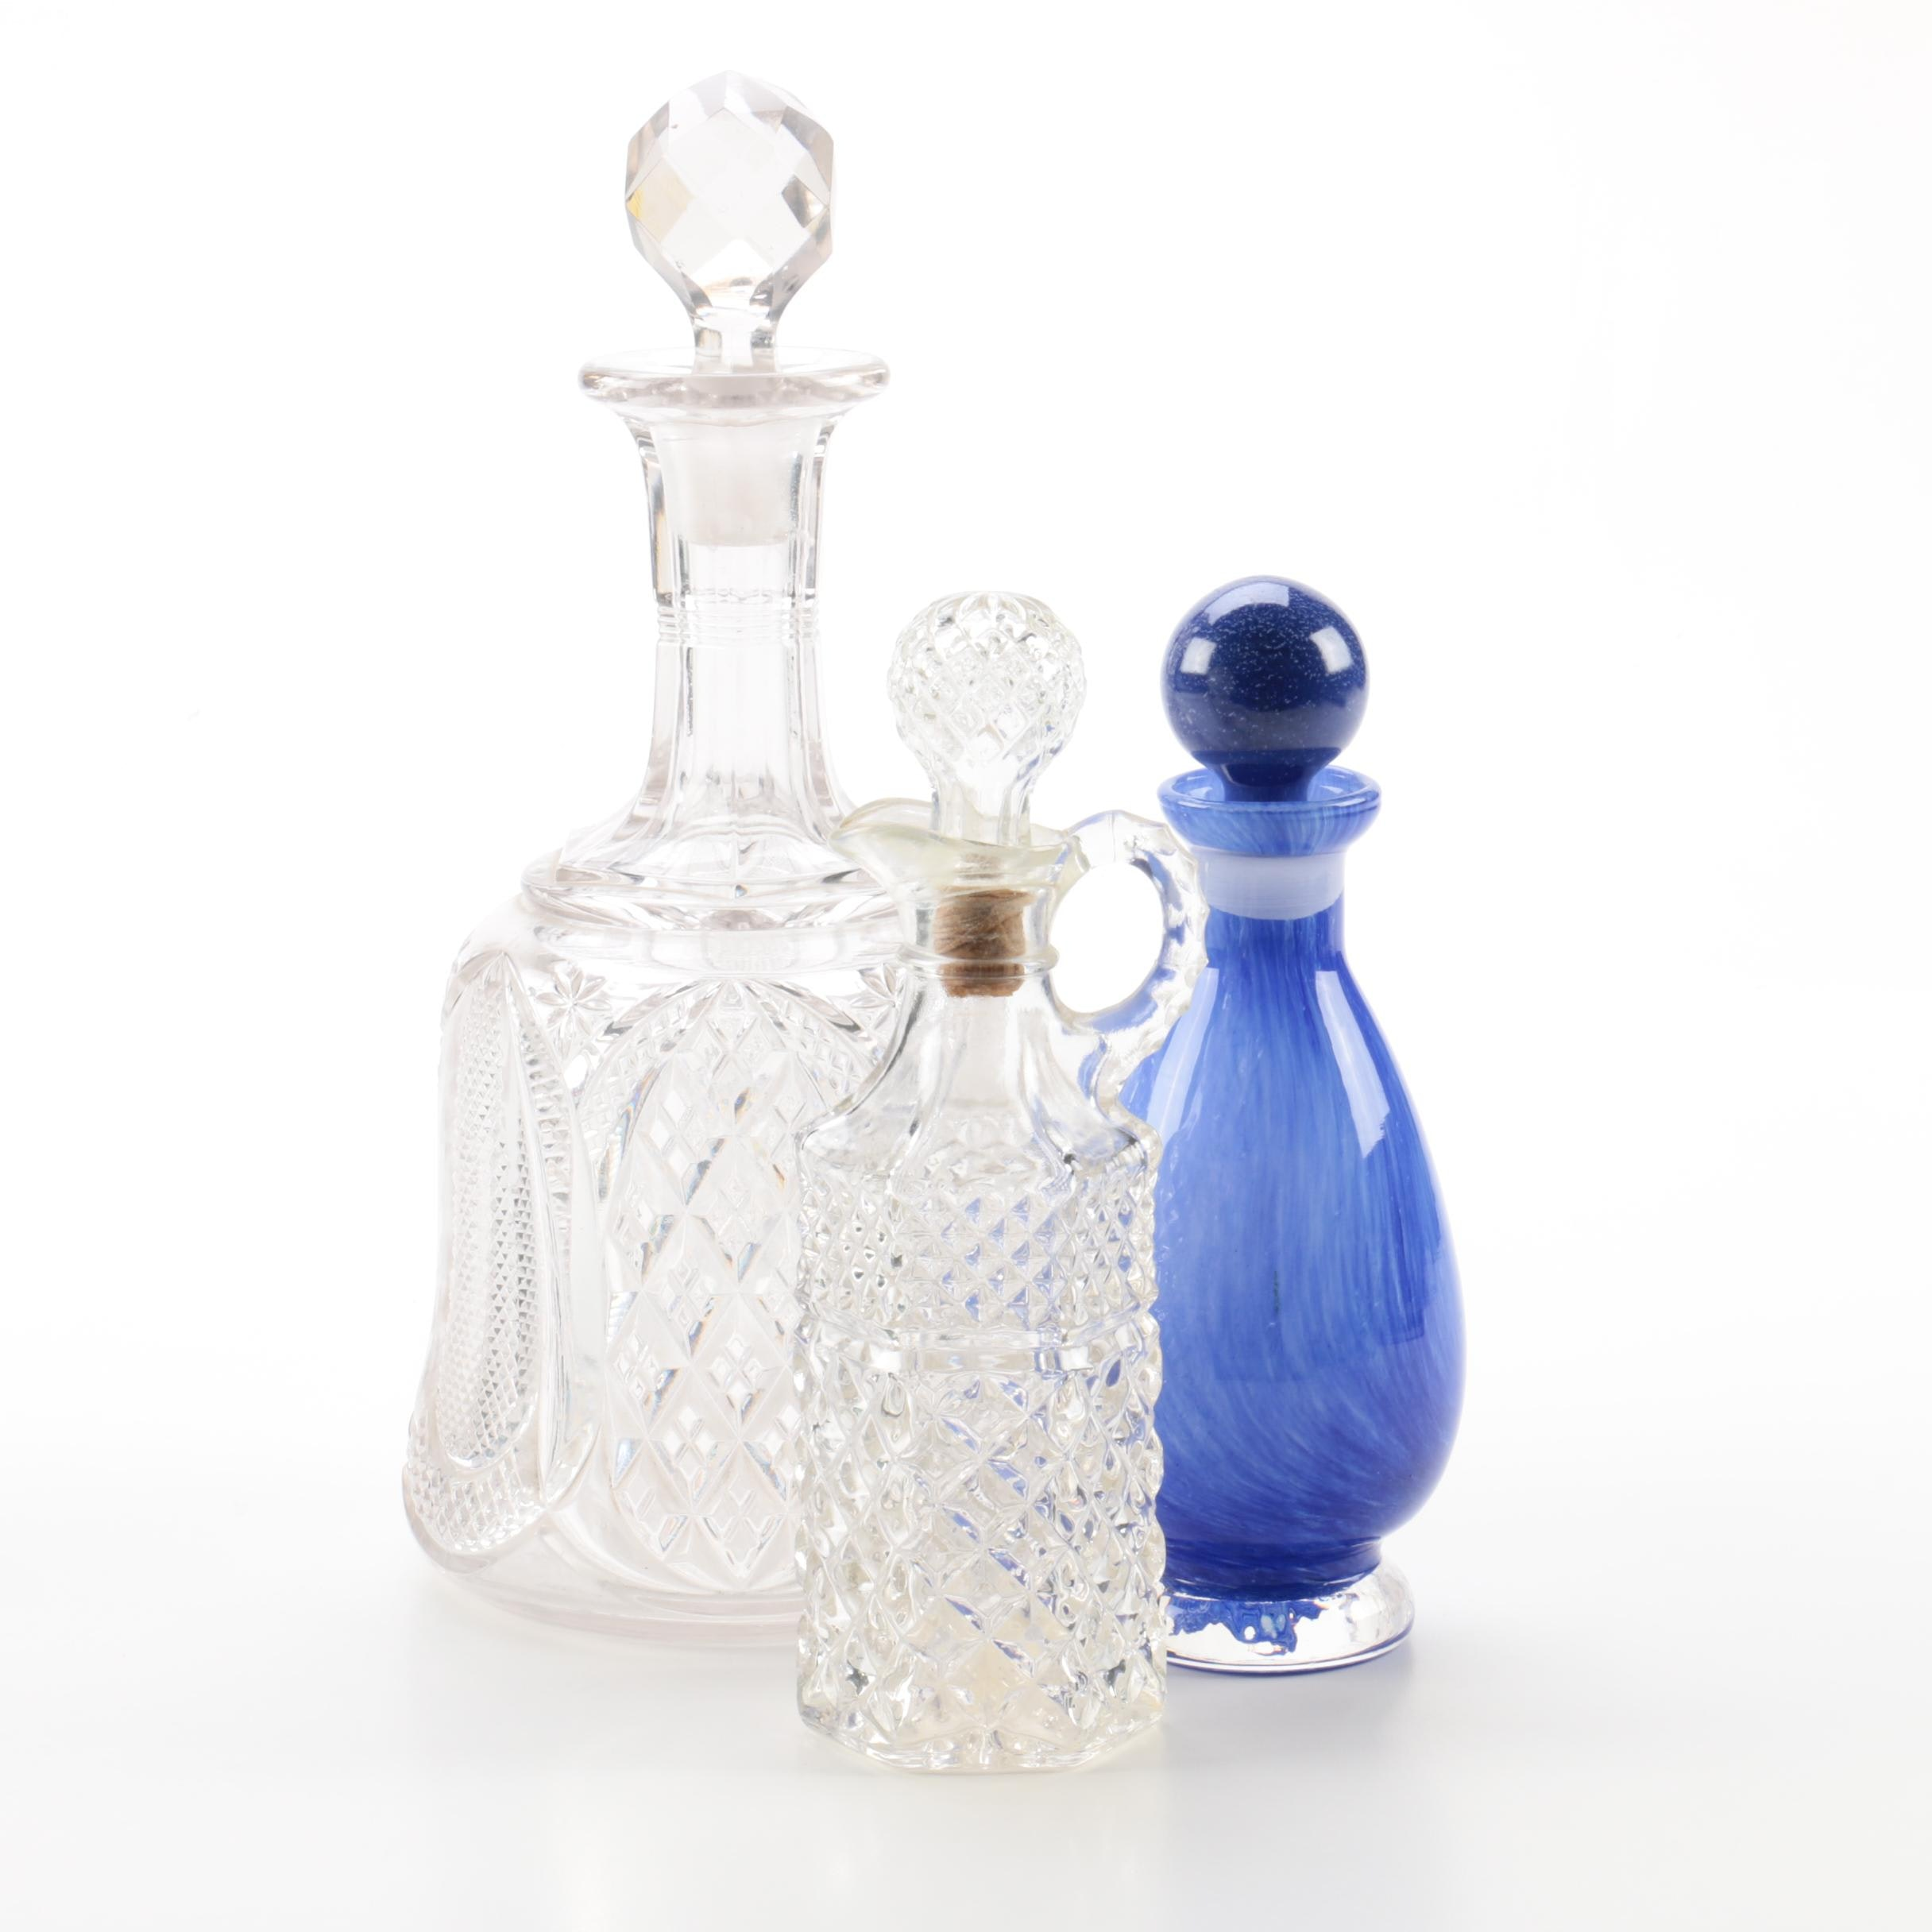 Glass Decanter, Cruet, and Blue Bottle